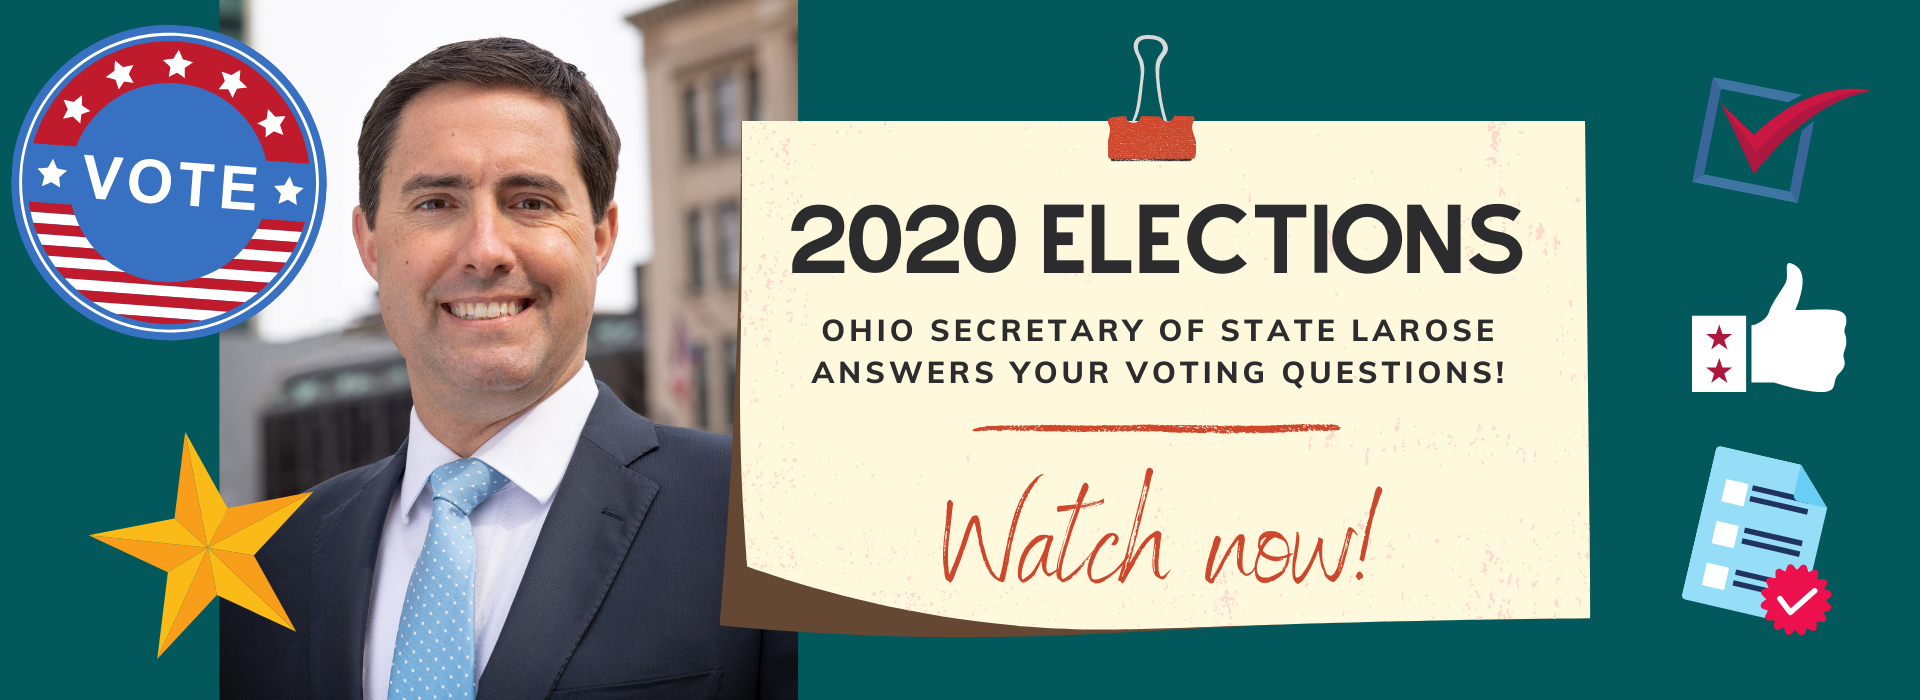 Watch our voting webinar with Ohio Secretary of State Frank LaRose!